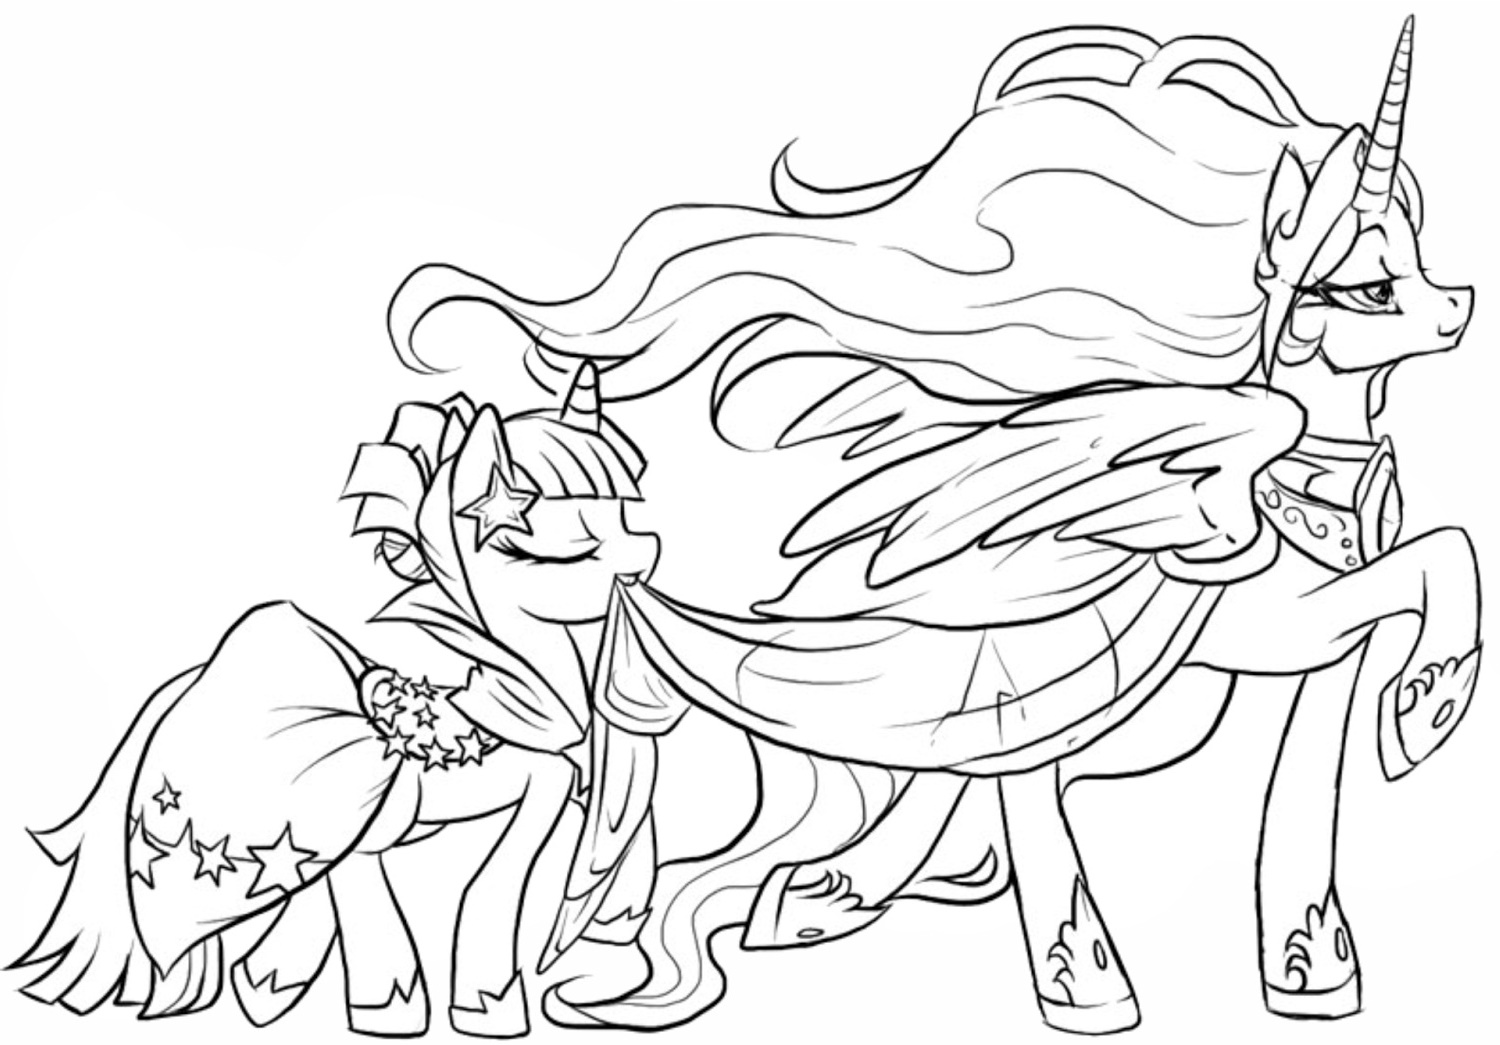 pony coloring book pdf 18 my little pony coloring pages pdf jpeg png free book pdf coloring pony